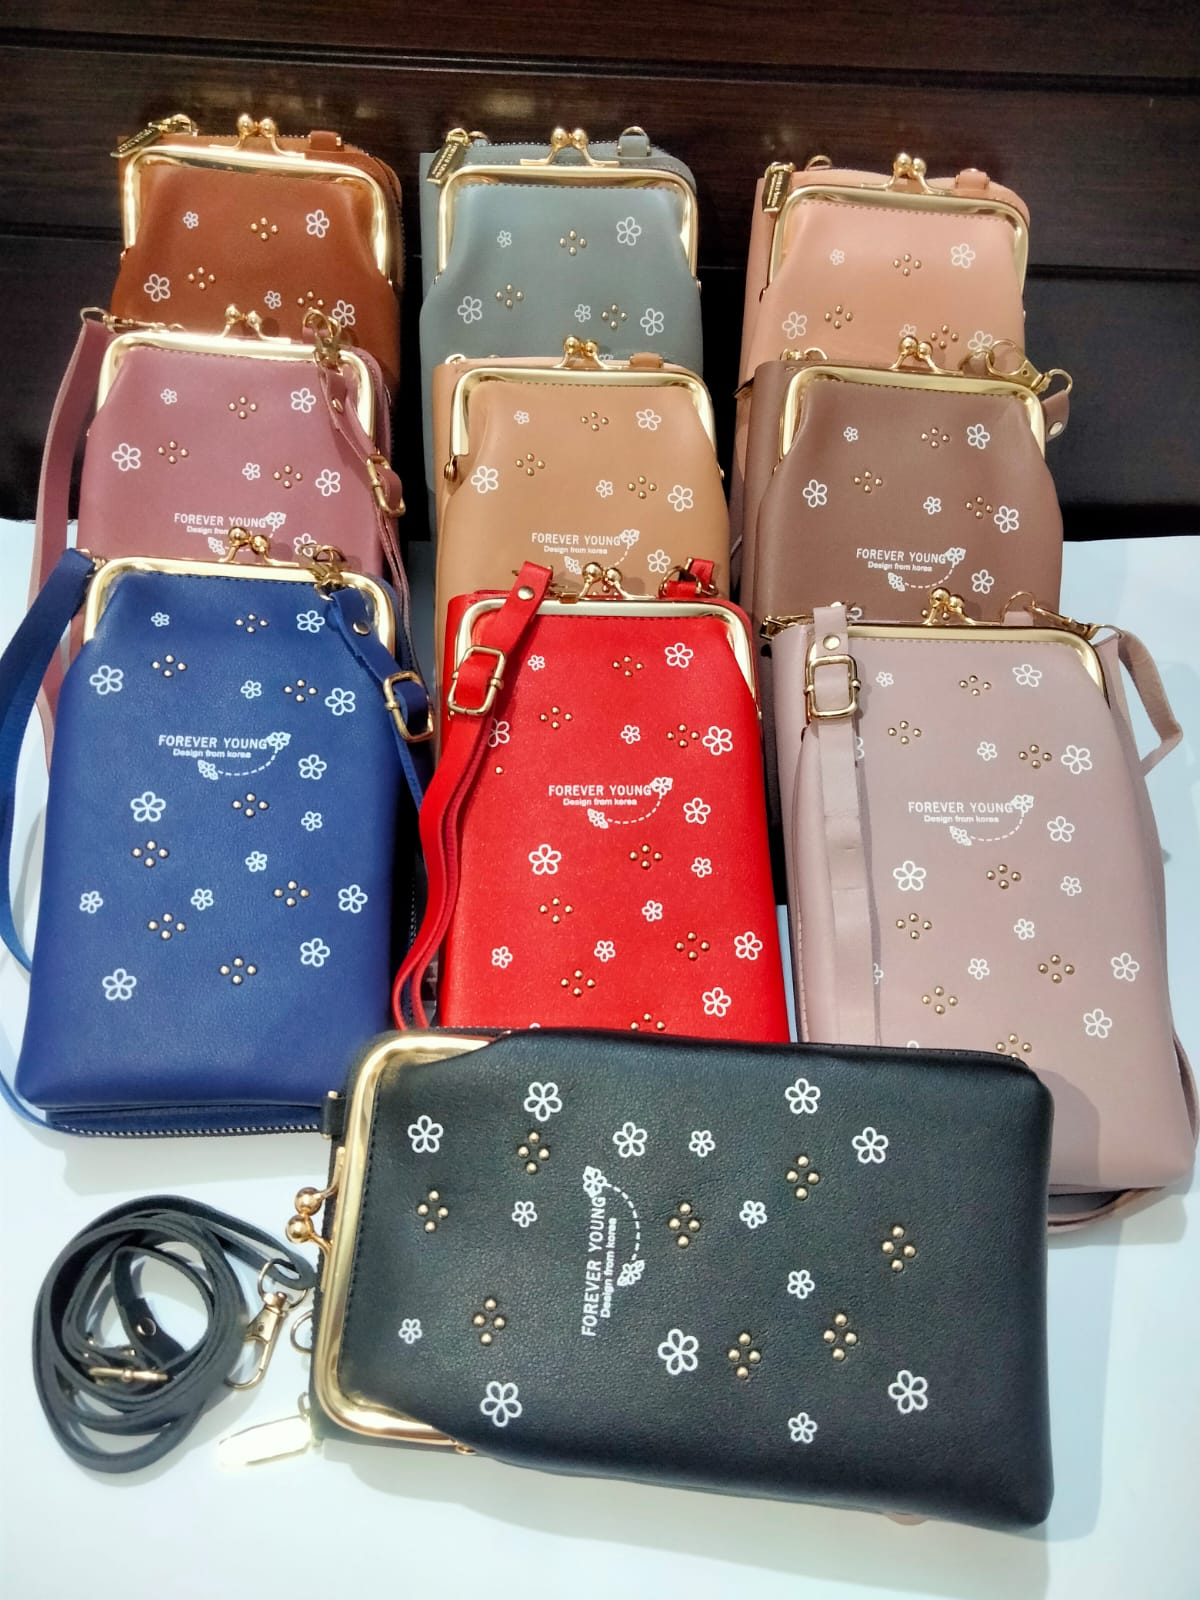 Stylish Mobile & Money Sling Ladies Wallet  Hand Bags Shoulder Bag with Long Strap for Girls Multipurpose Zip Purse Mini Crossbody Bag PU Leather